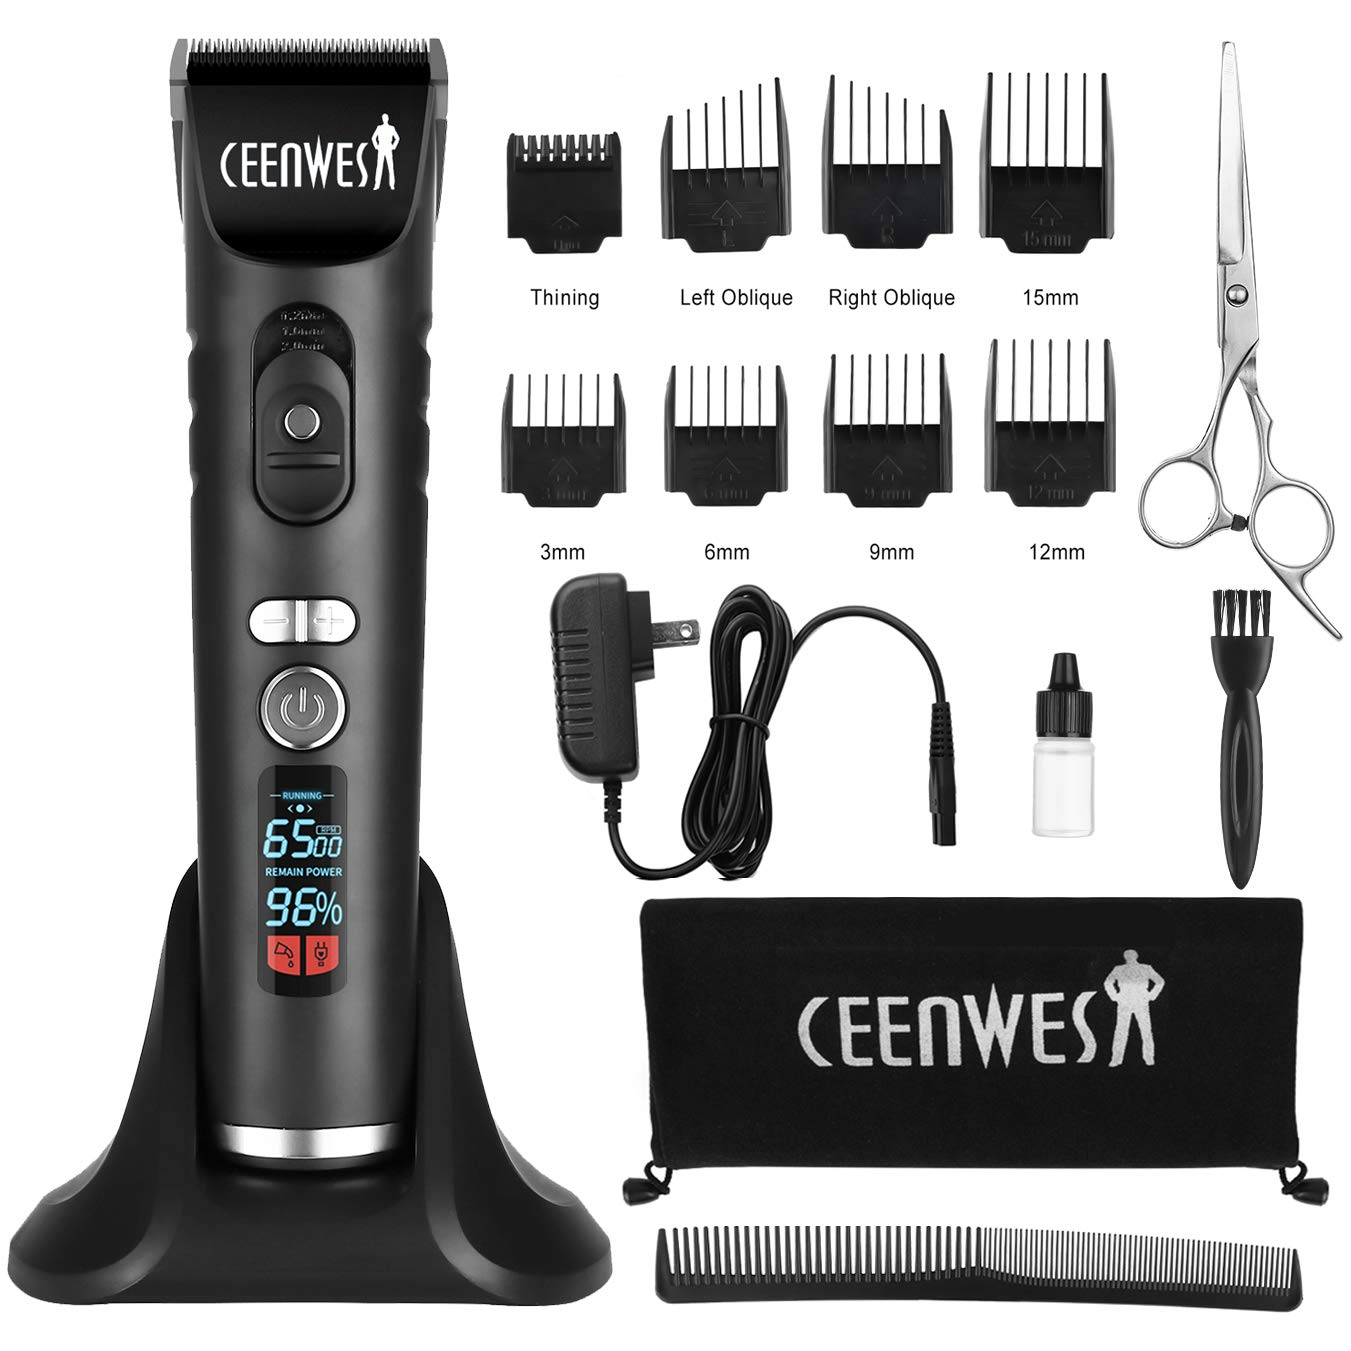 Ceenwes Professional Hair Trimmer Cordless Hair Clippers Rechargeable Beard Trimmer Electric LED Display Haircut Kit for Men and Family Use with Charging Dock, Guide Combs, Scissors, Comb